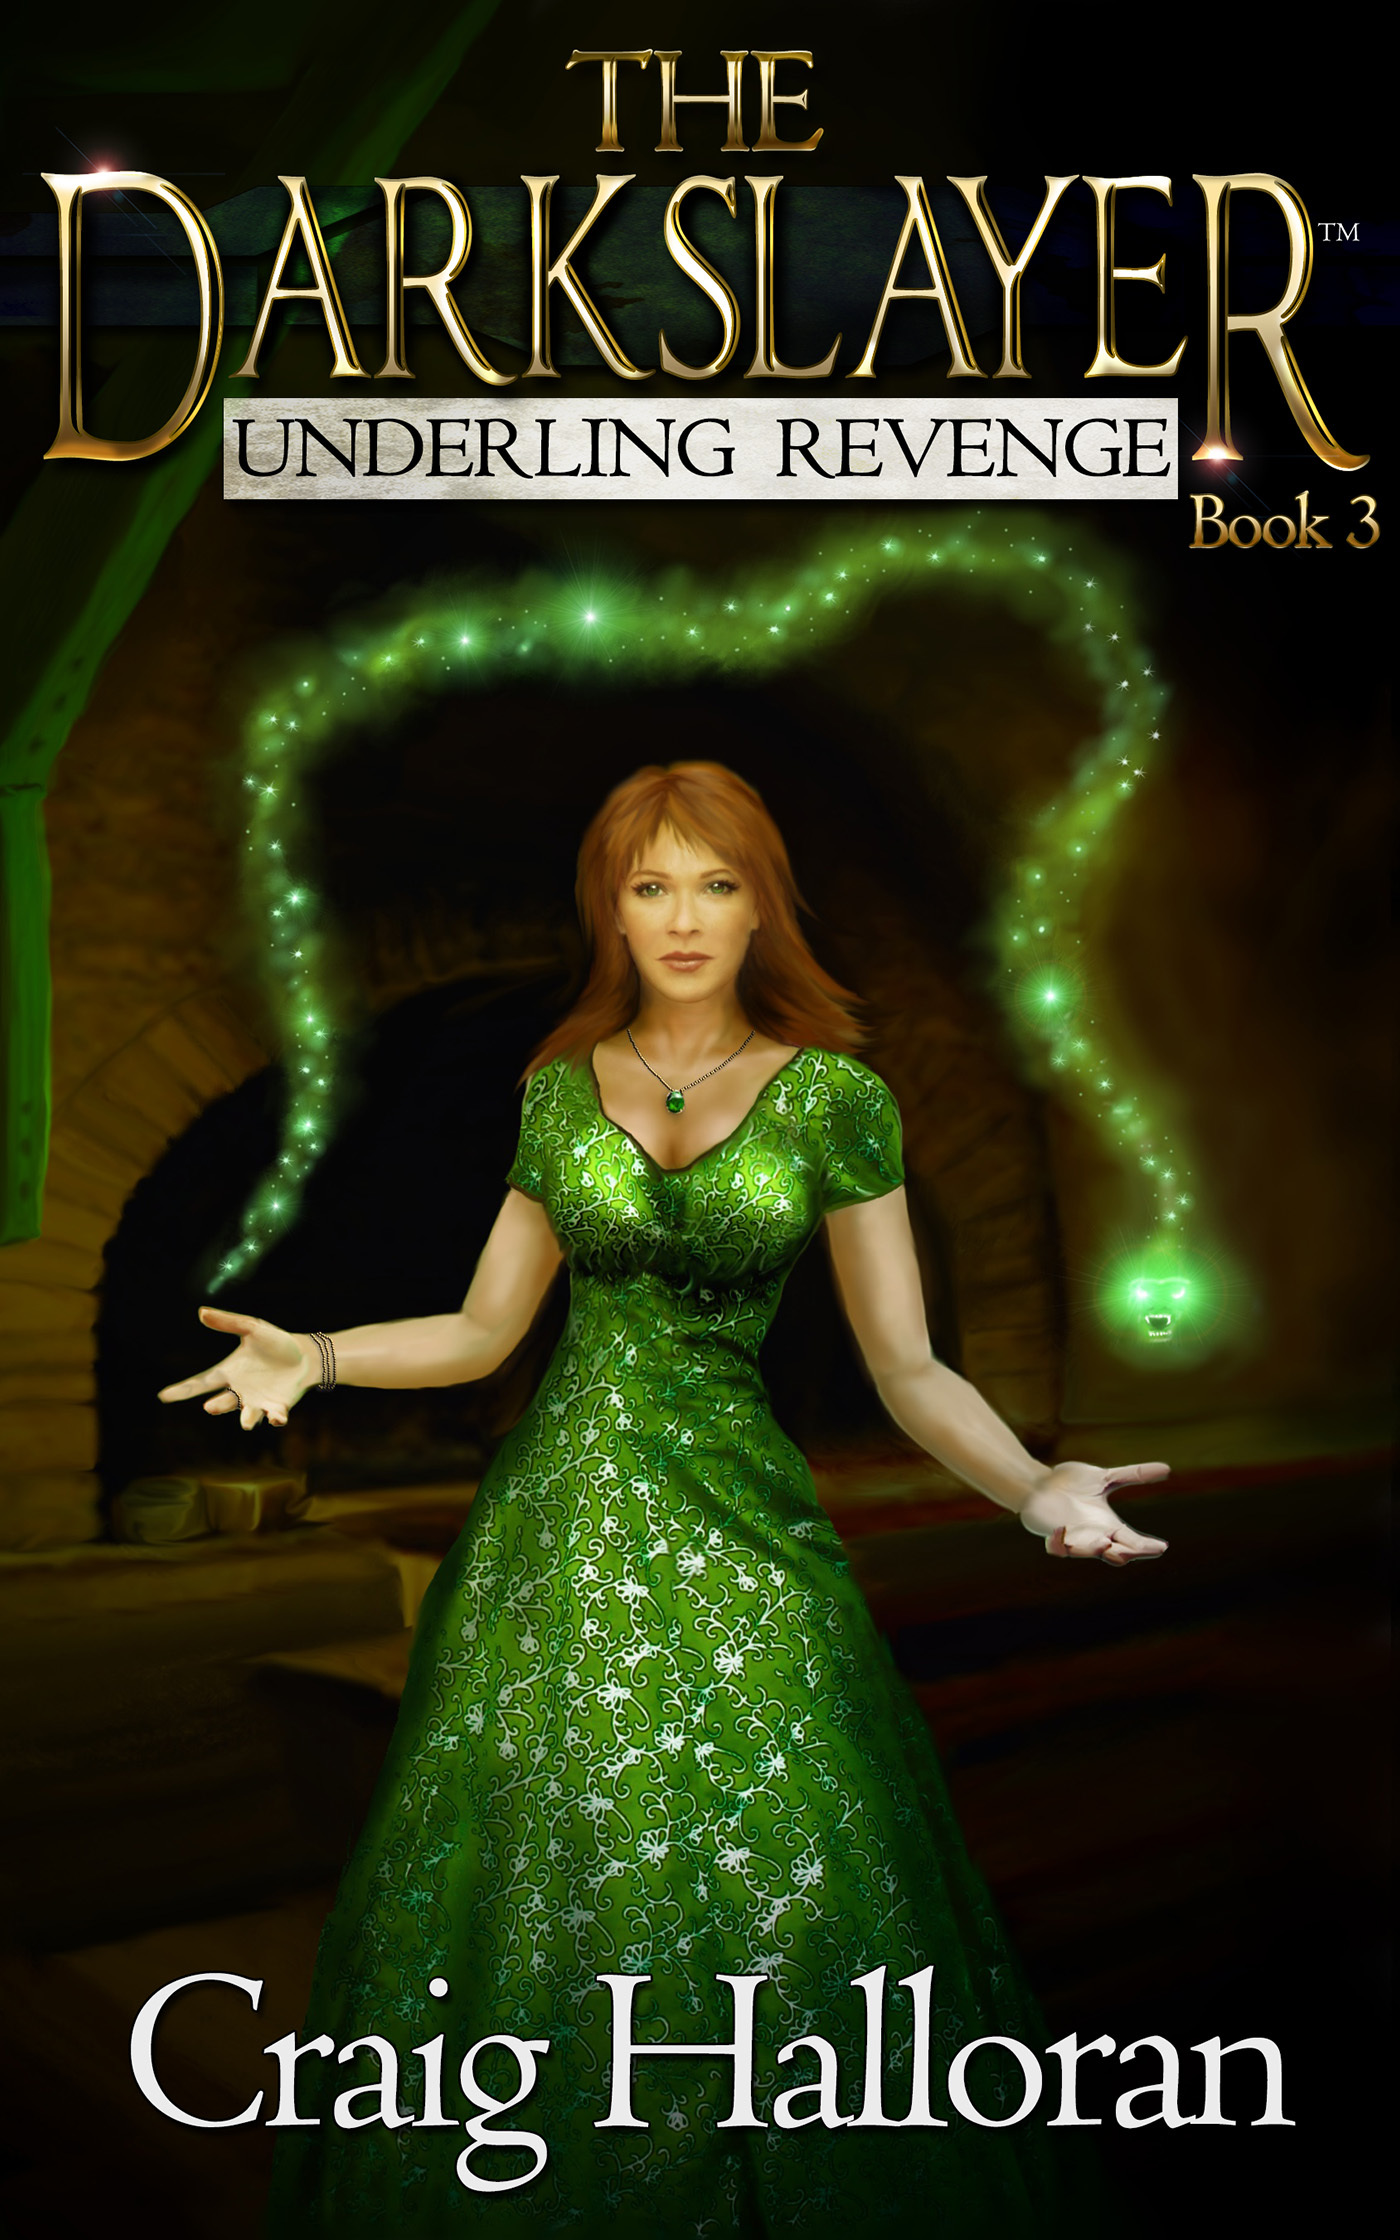 The Darkslayer: Underling Revenge (Book 3)